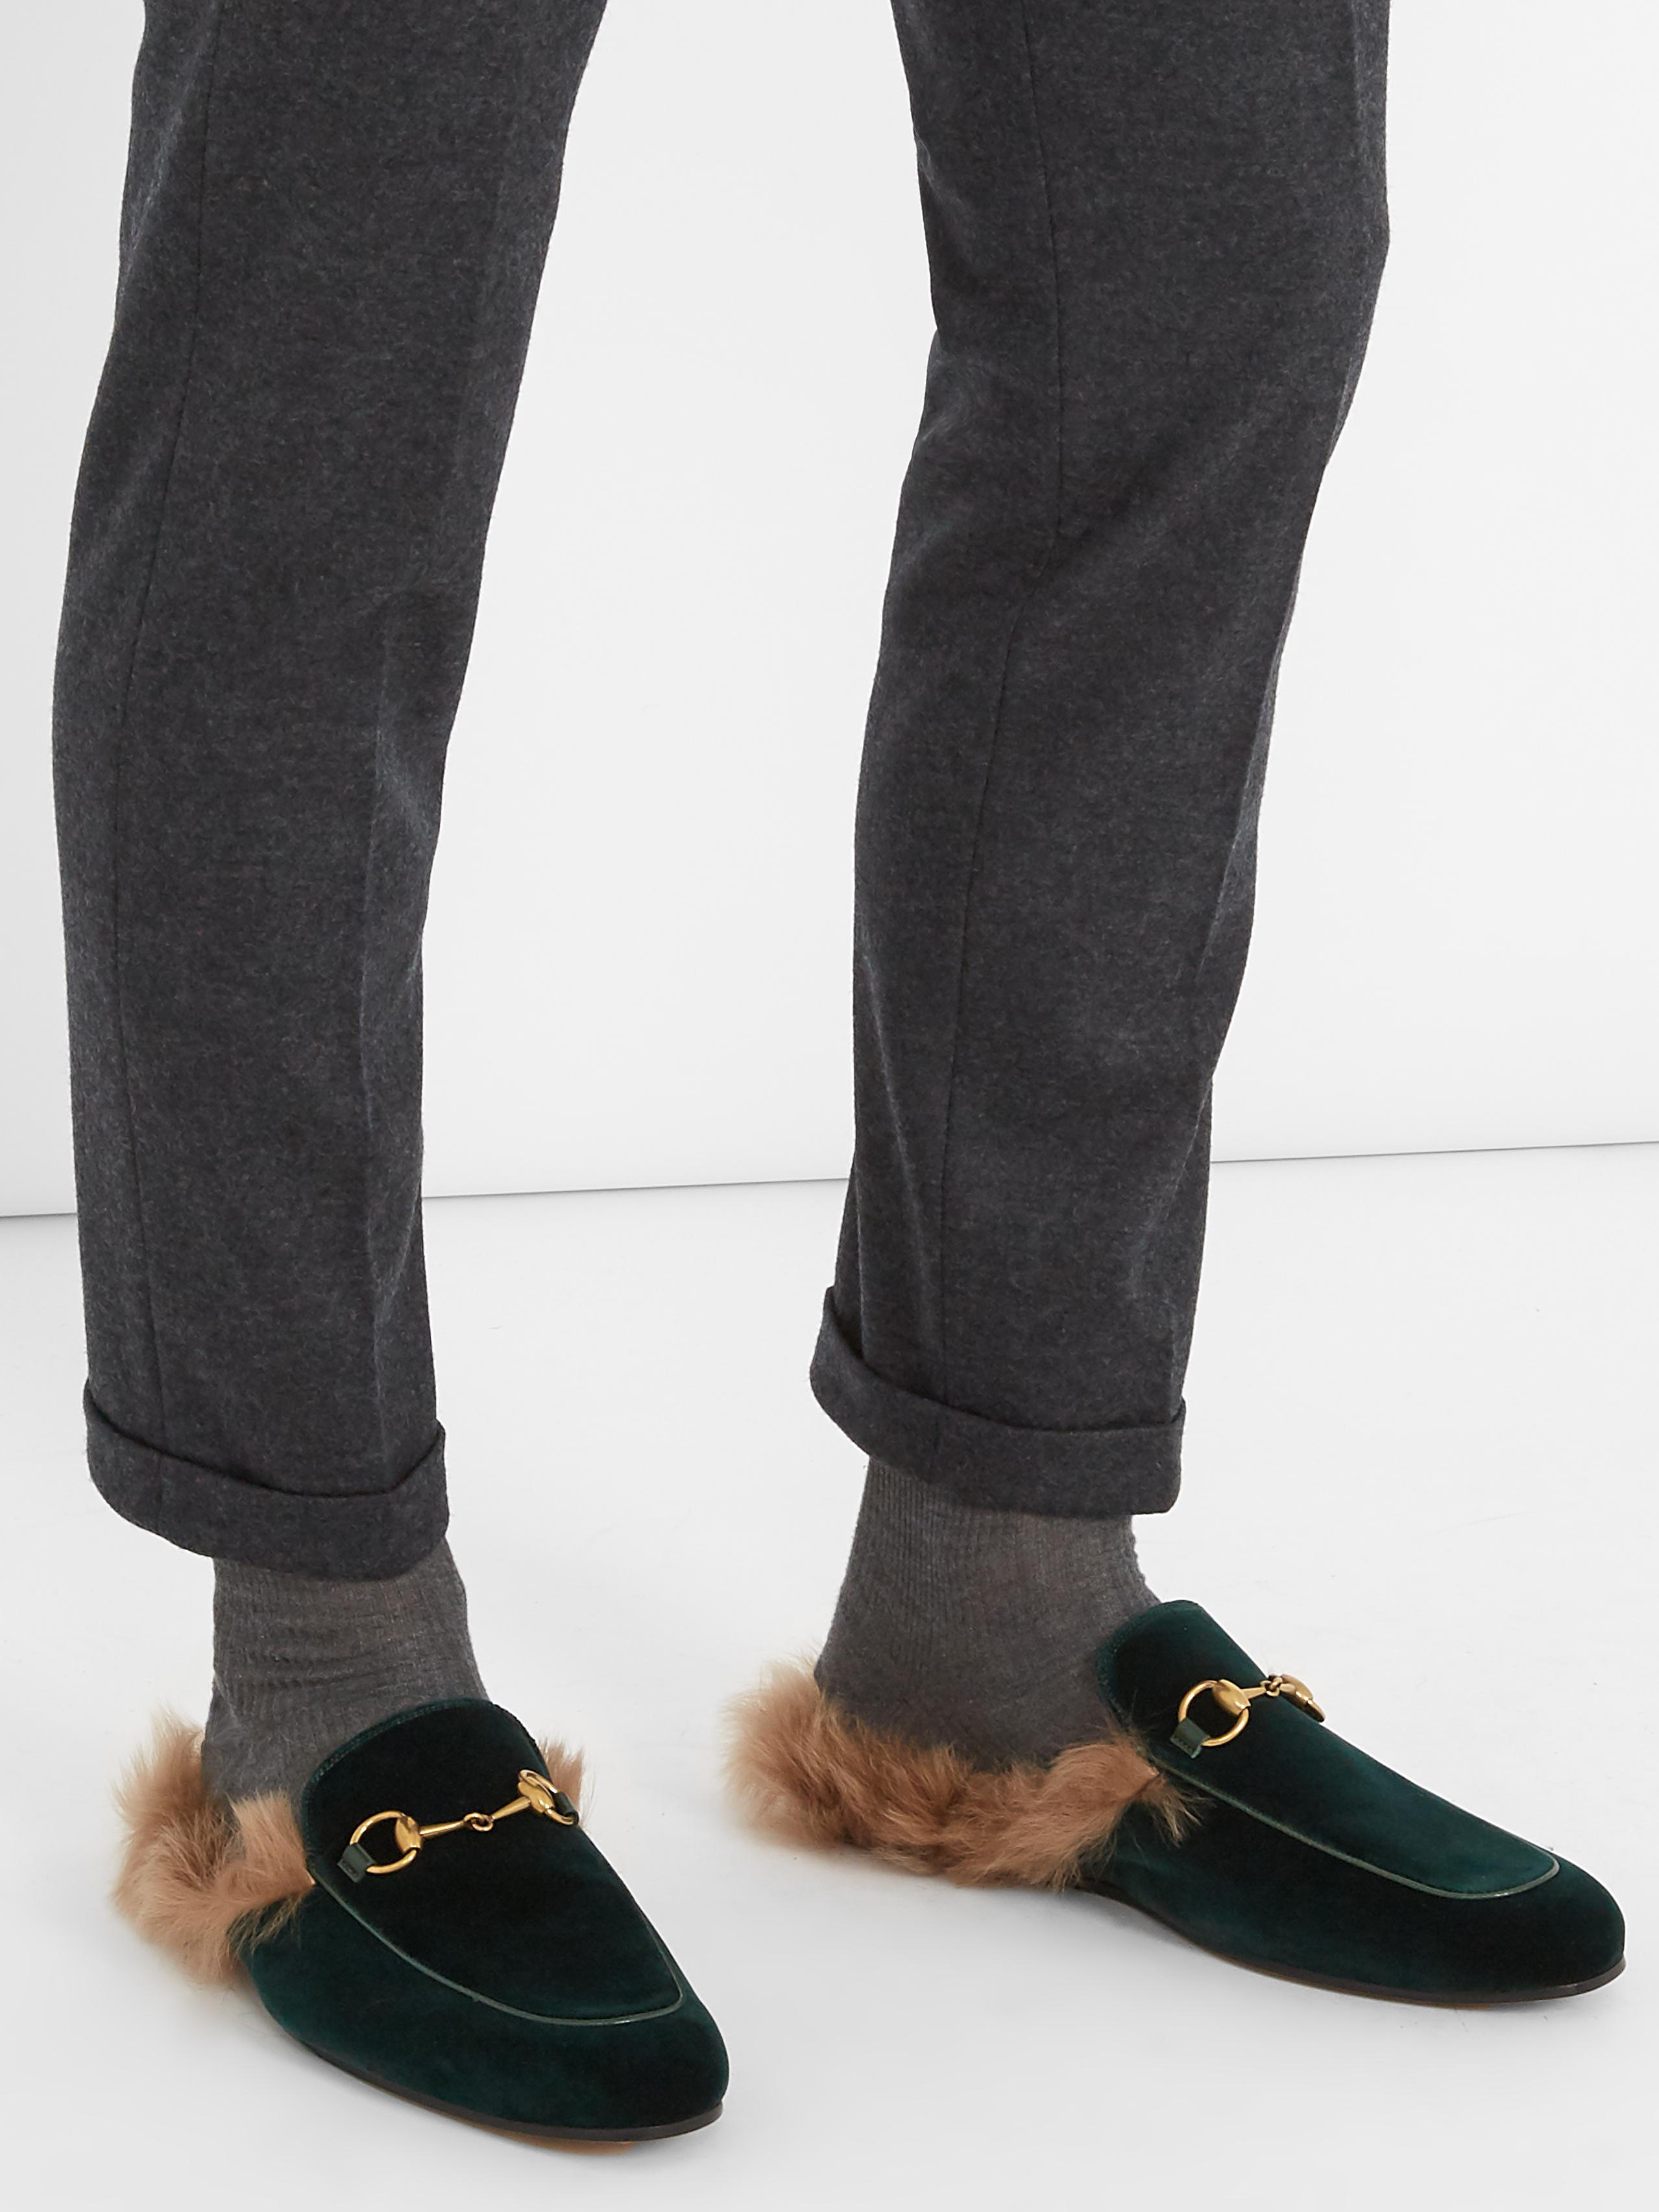 ca41500f2b0 Lyst - Gucci Princetown Fur-lined Velvet Loafers for Men